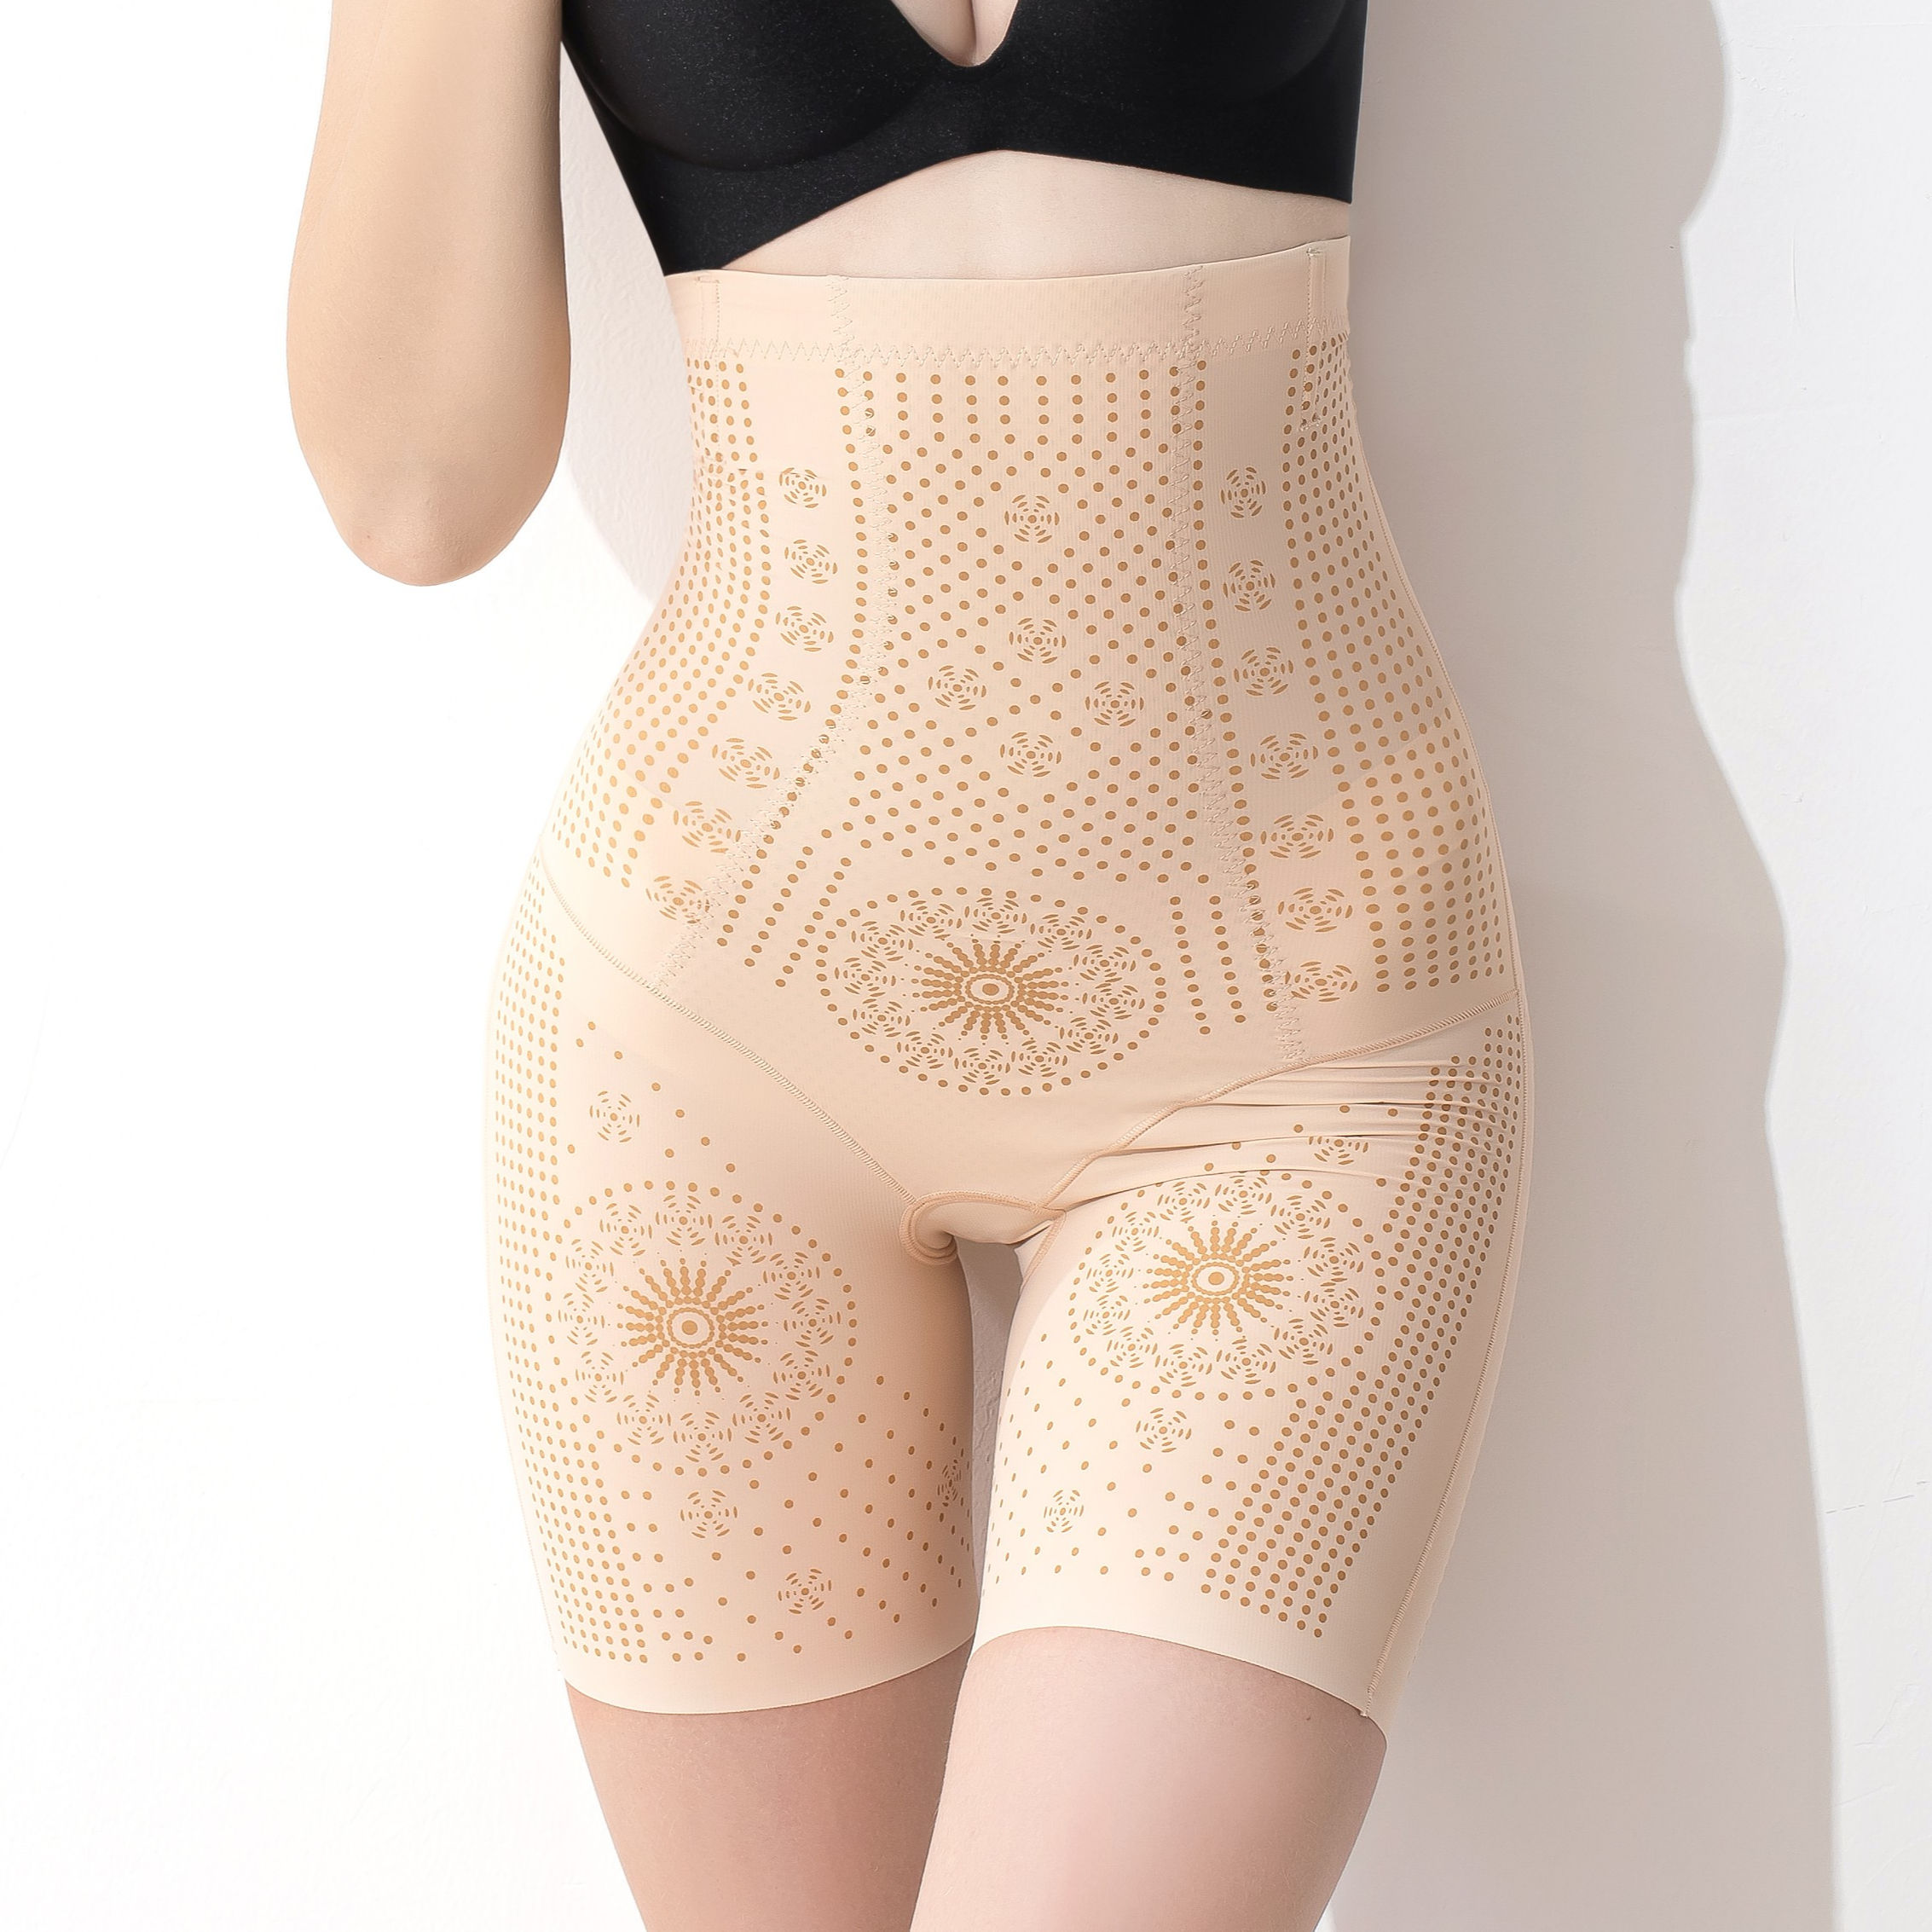 New Design Women Slim And Lift Shapewear Butt Lifter High Waist Tummy Control Shapewear Body Shaper